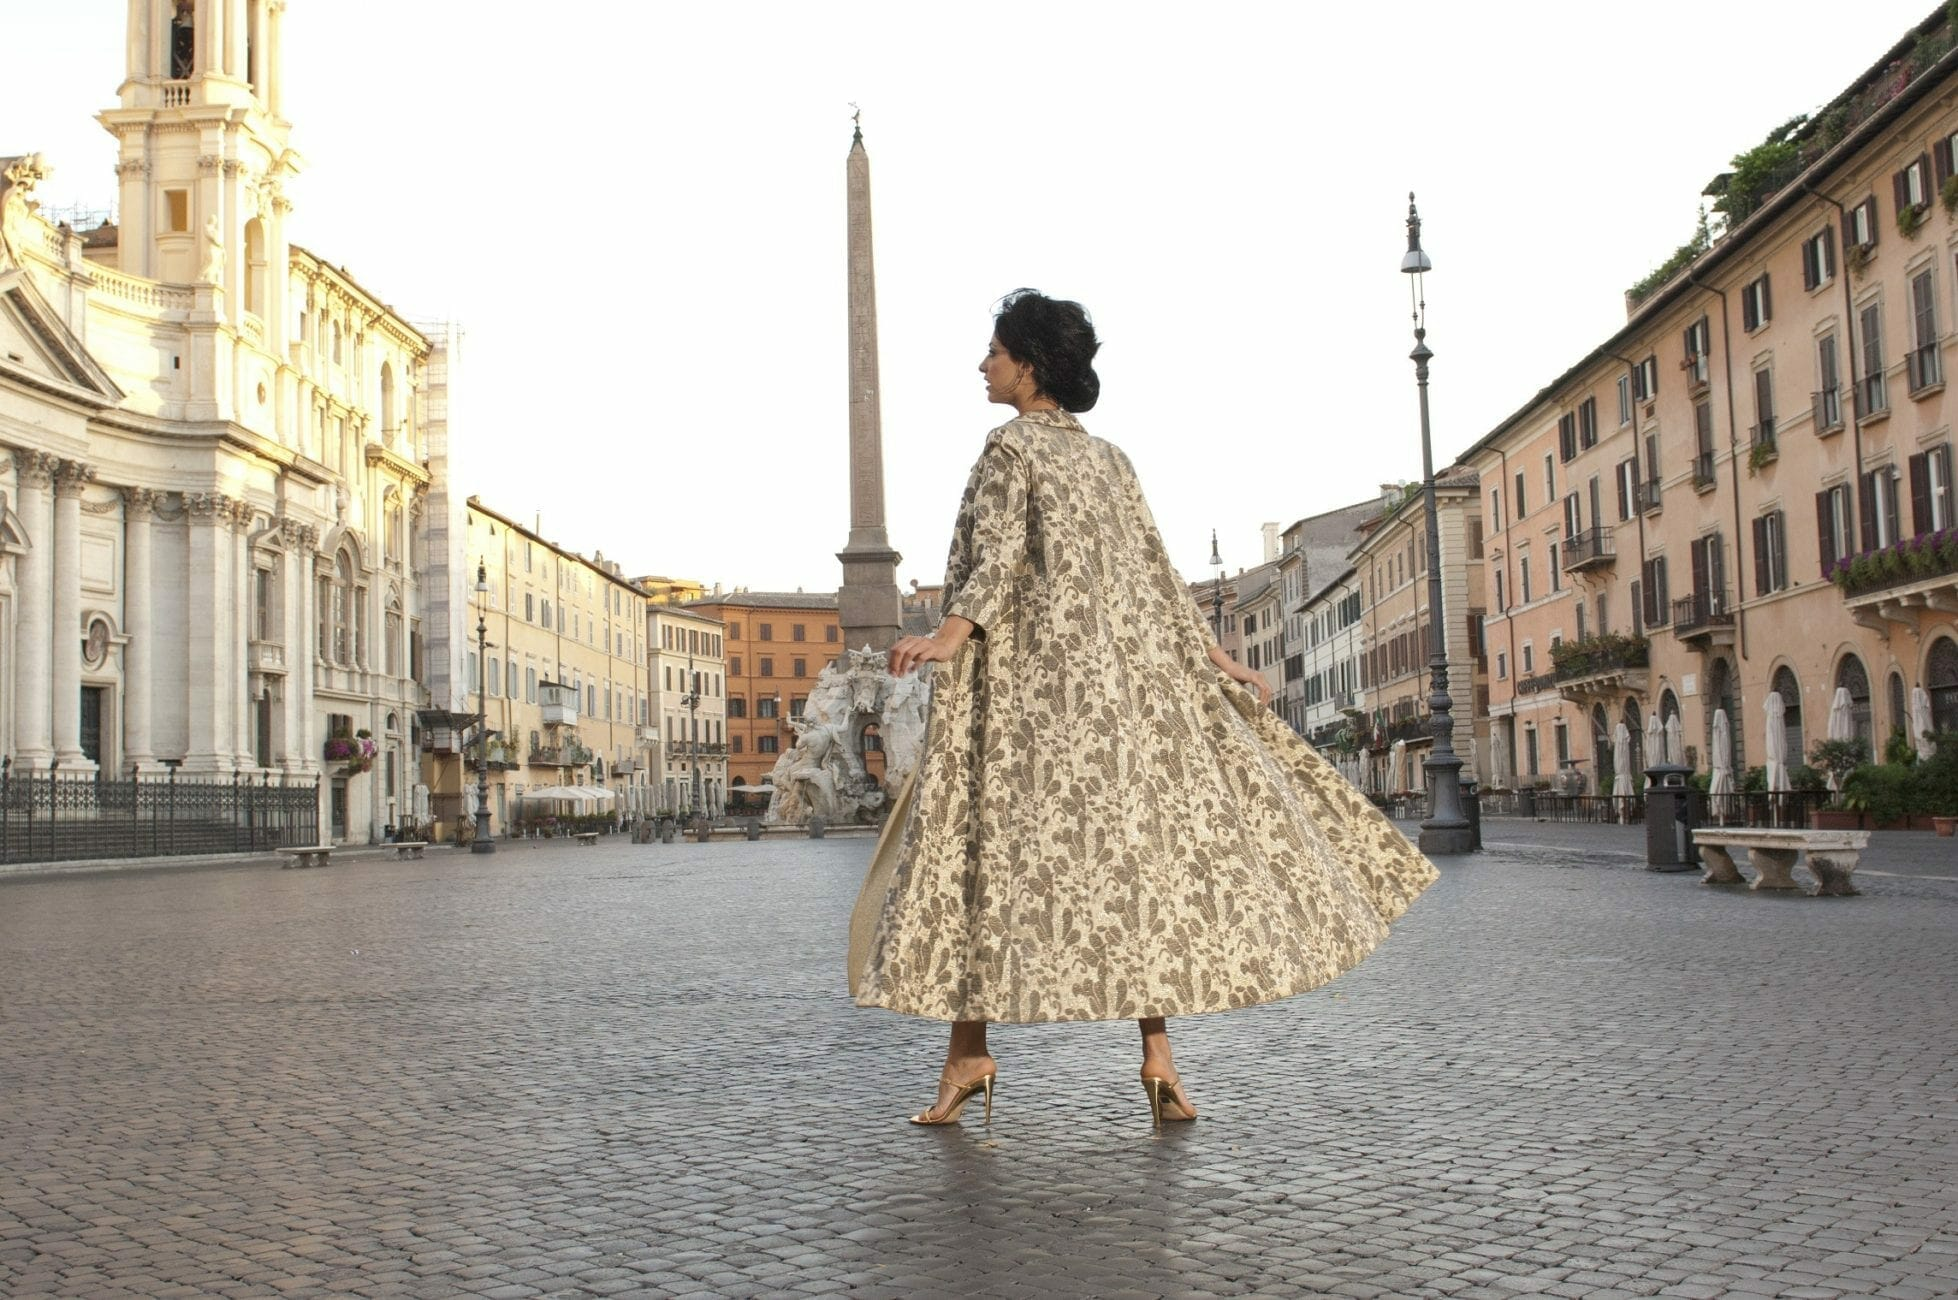 High quality sustainable fashion made in Italy